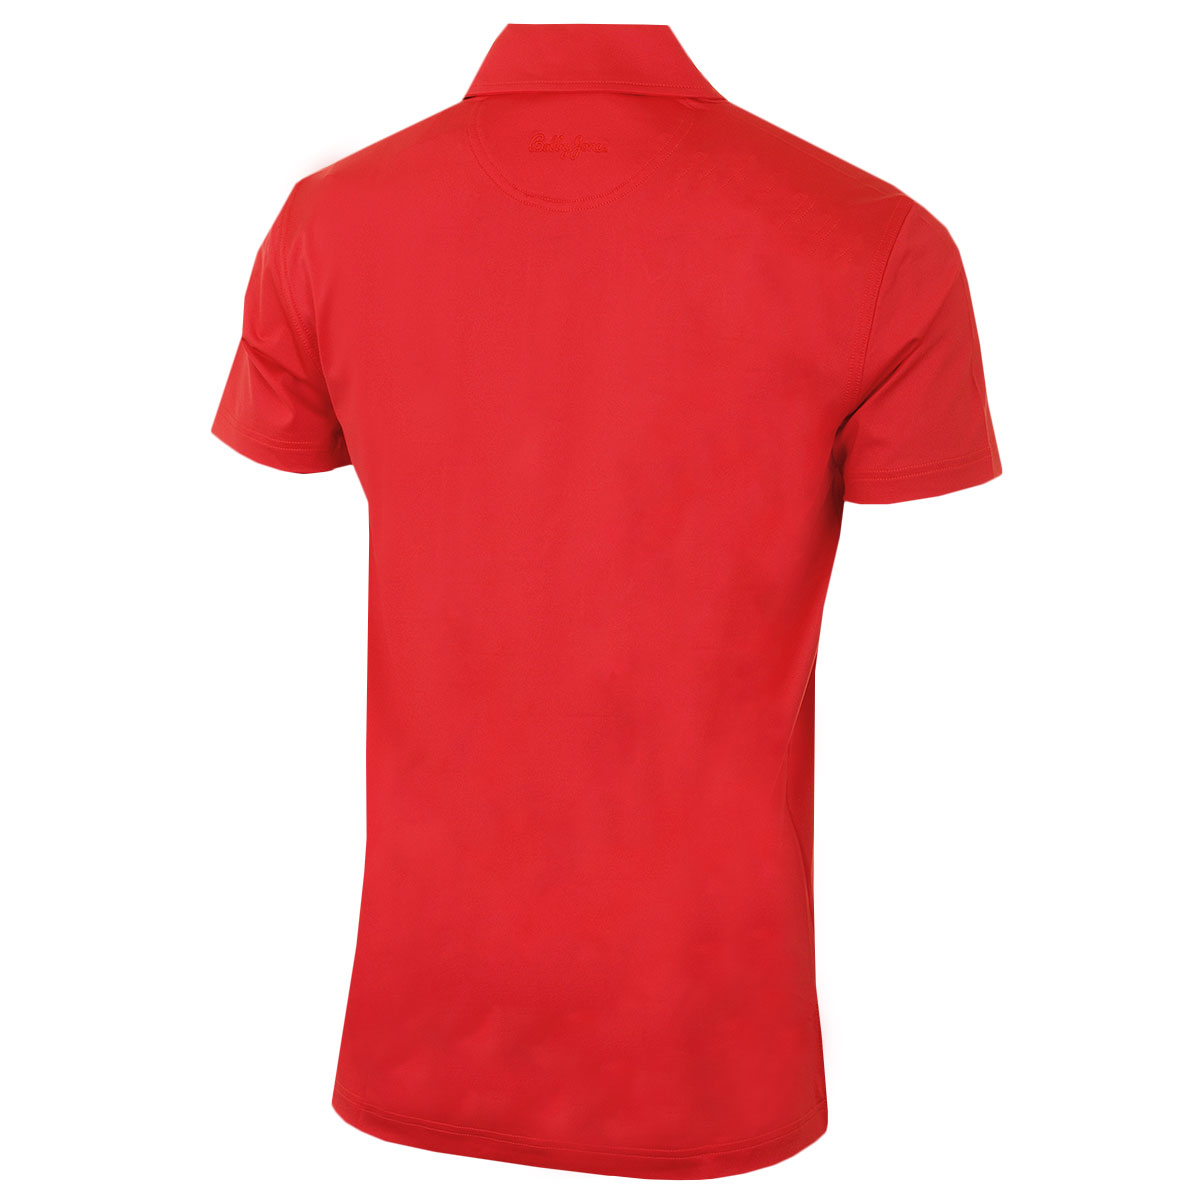 Bobby-Jones-Mens-XH2O-Perf-Solid-Jersey-TF-Golf-Polo-Shirt-69-OFF-RRP thumbnail 5